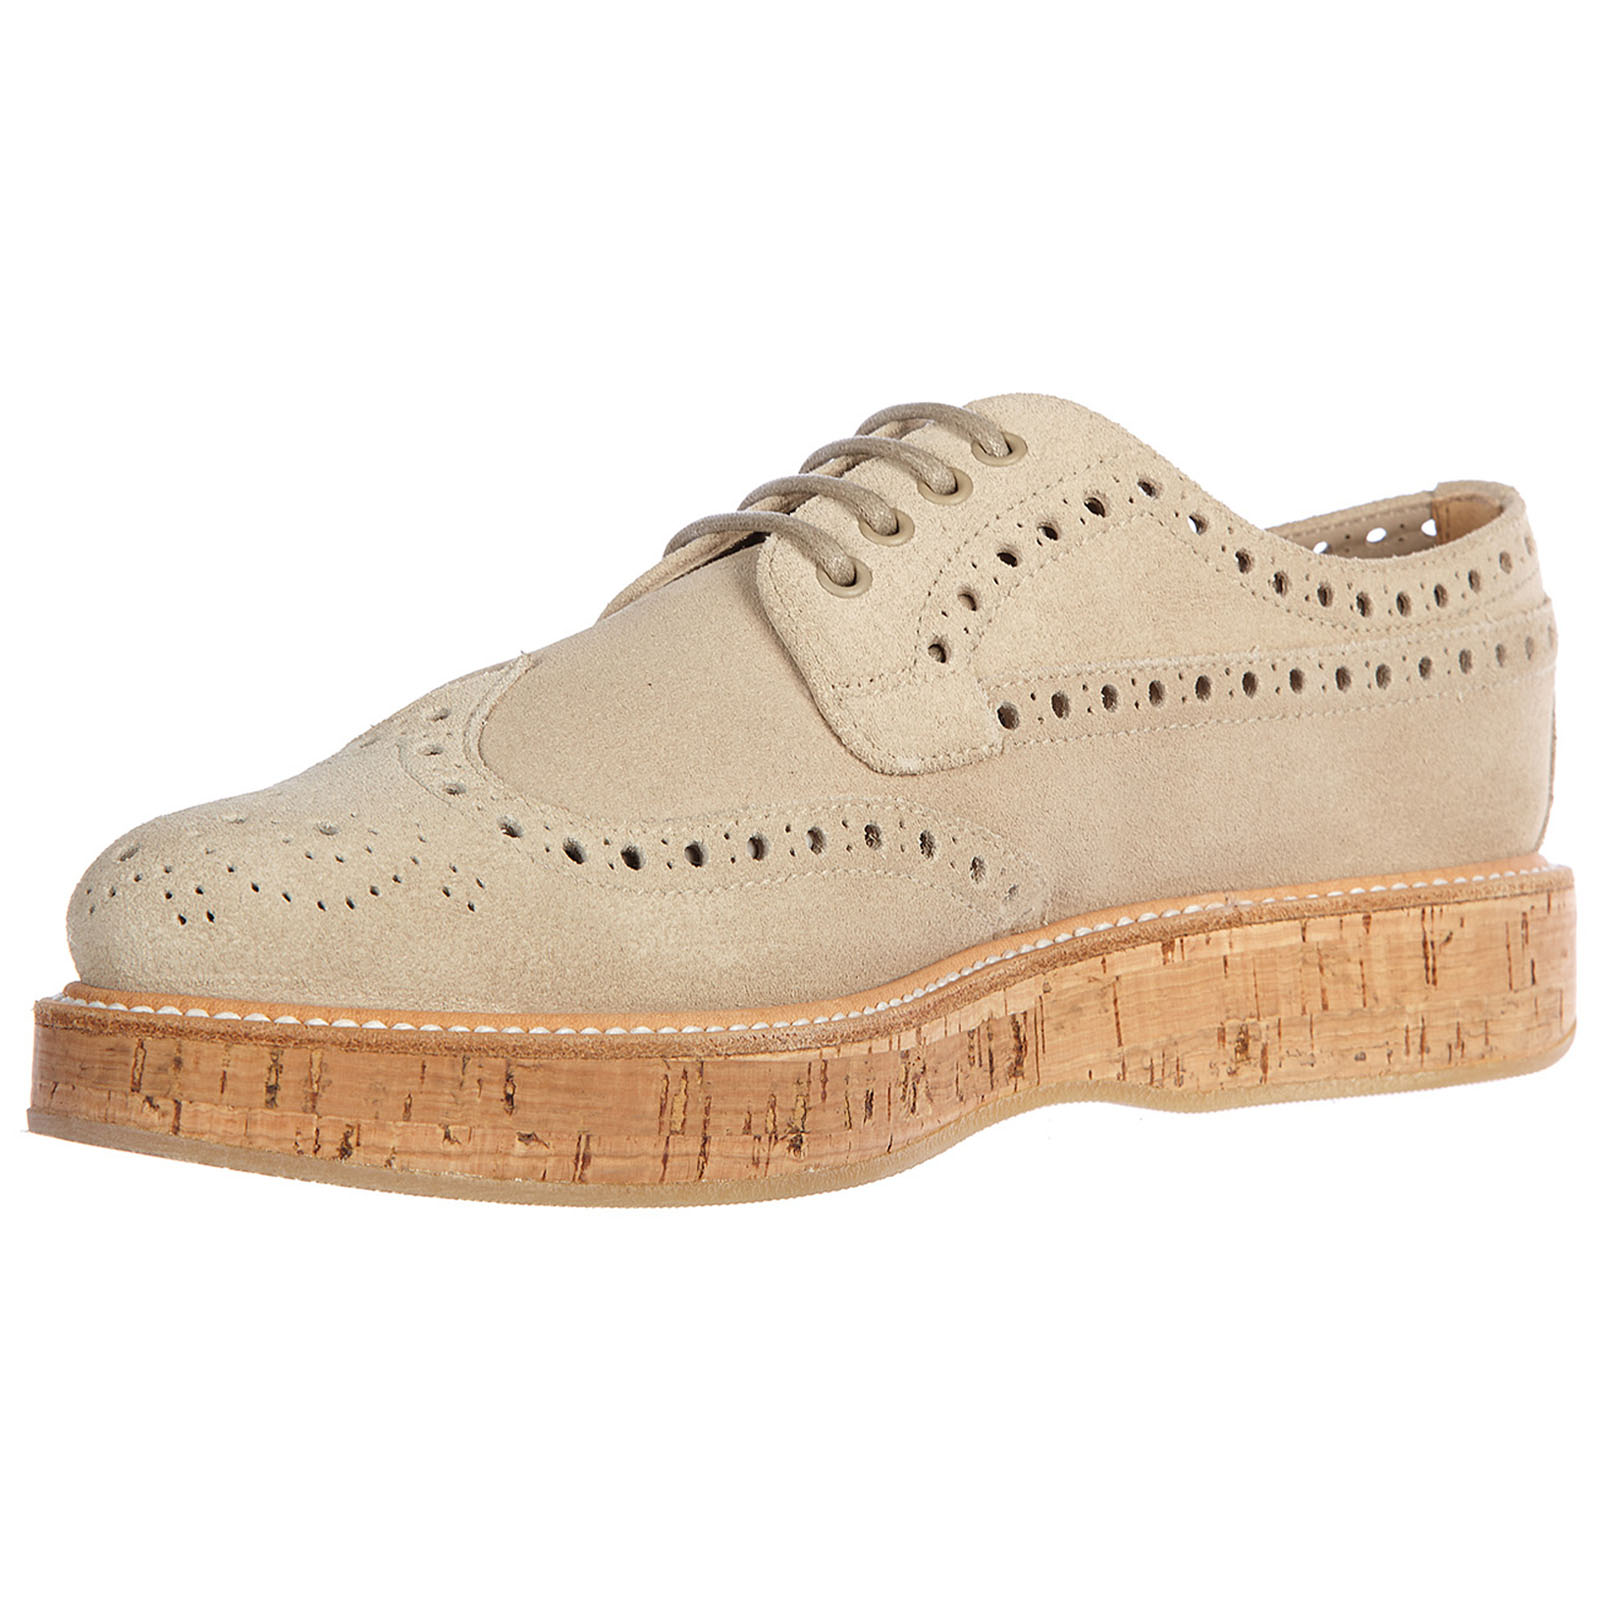 Women's classic suede lace up laced formal shoes derby soft castgold